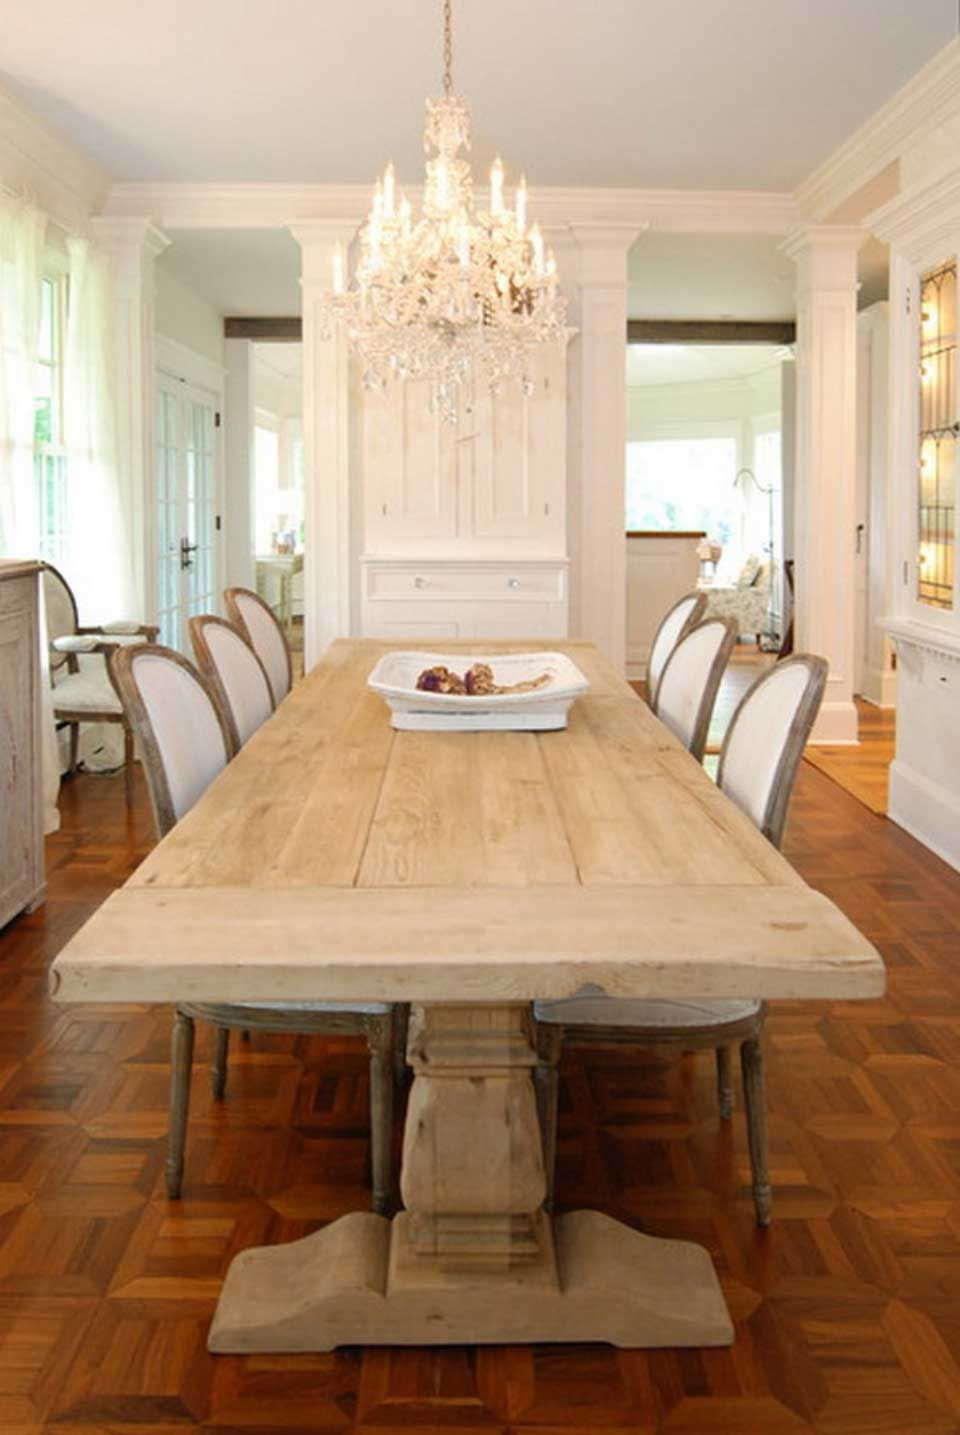 Rustic Dining Room Ideas For Small House With Expanding Teak